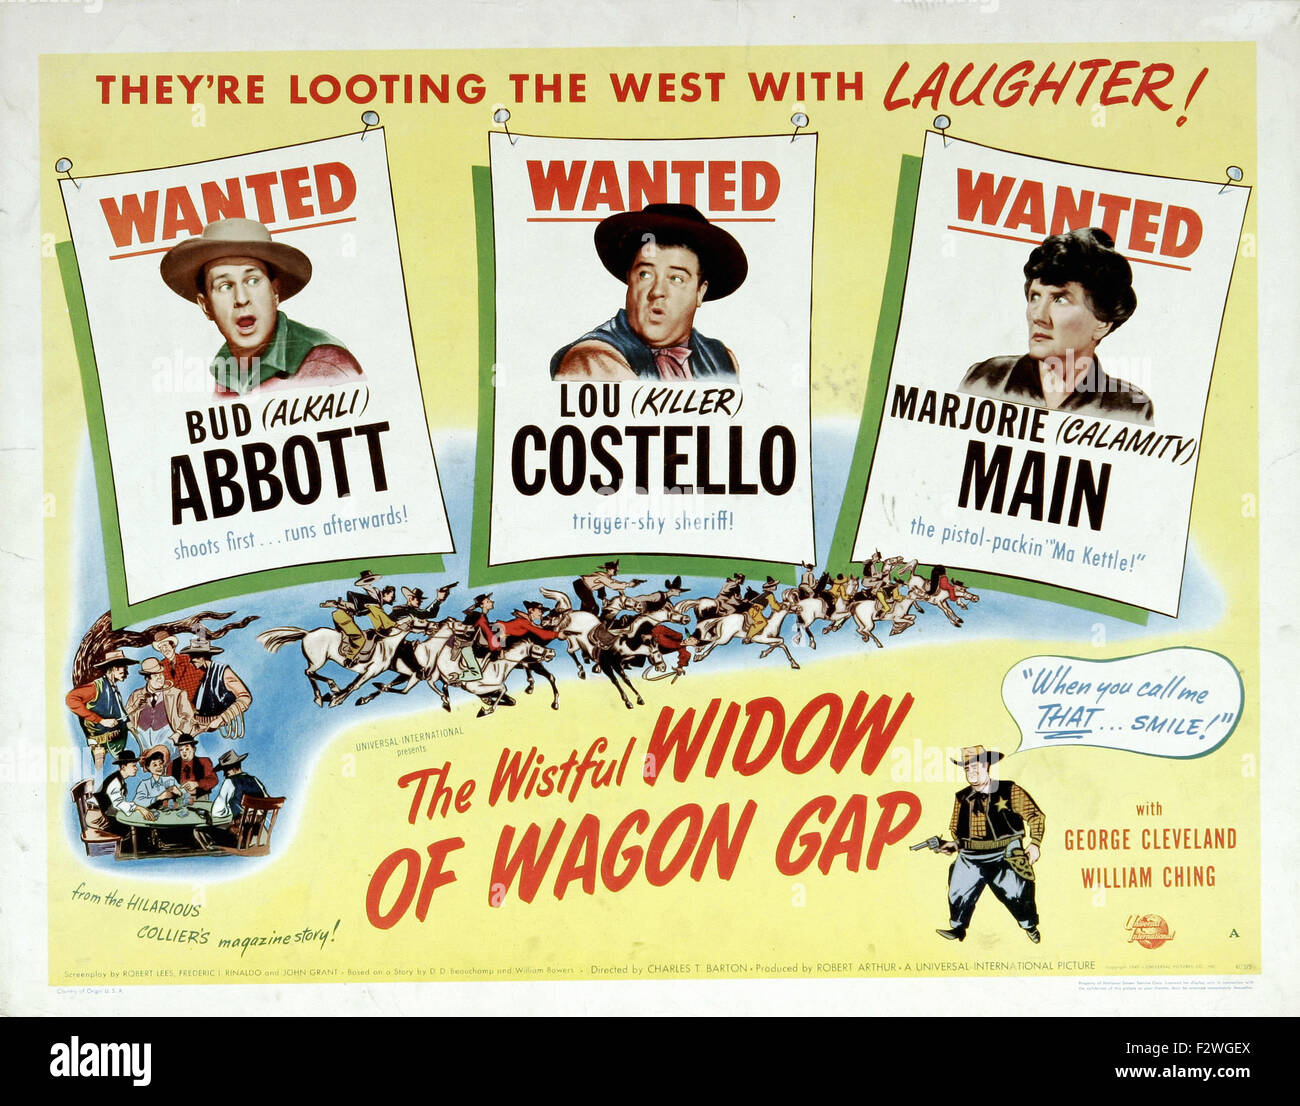 Wistful Widow of Wagon Gap, The - Movie Poster - Stock Image